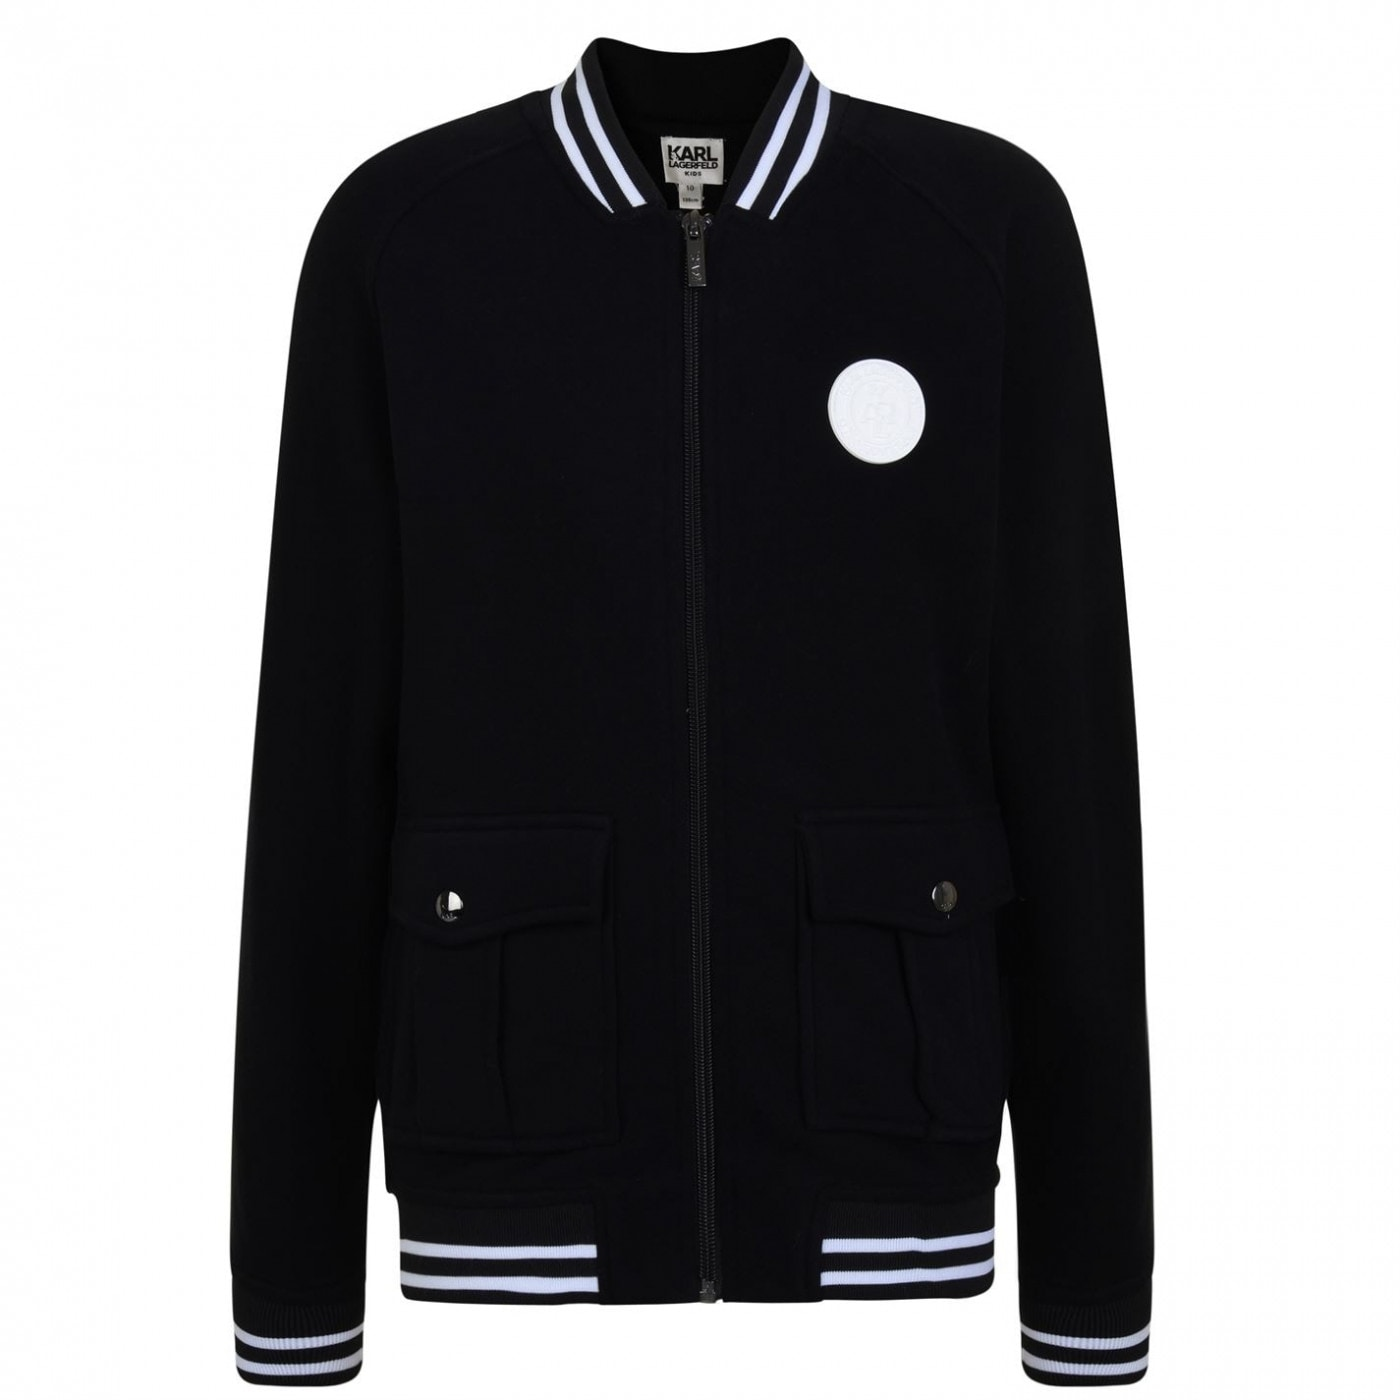 Karl Lagerfeld Skool Team Bomber Jacket